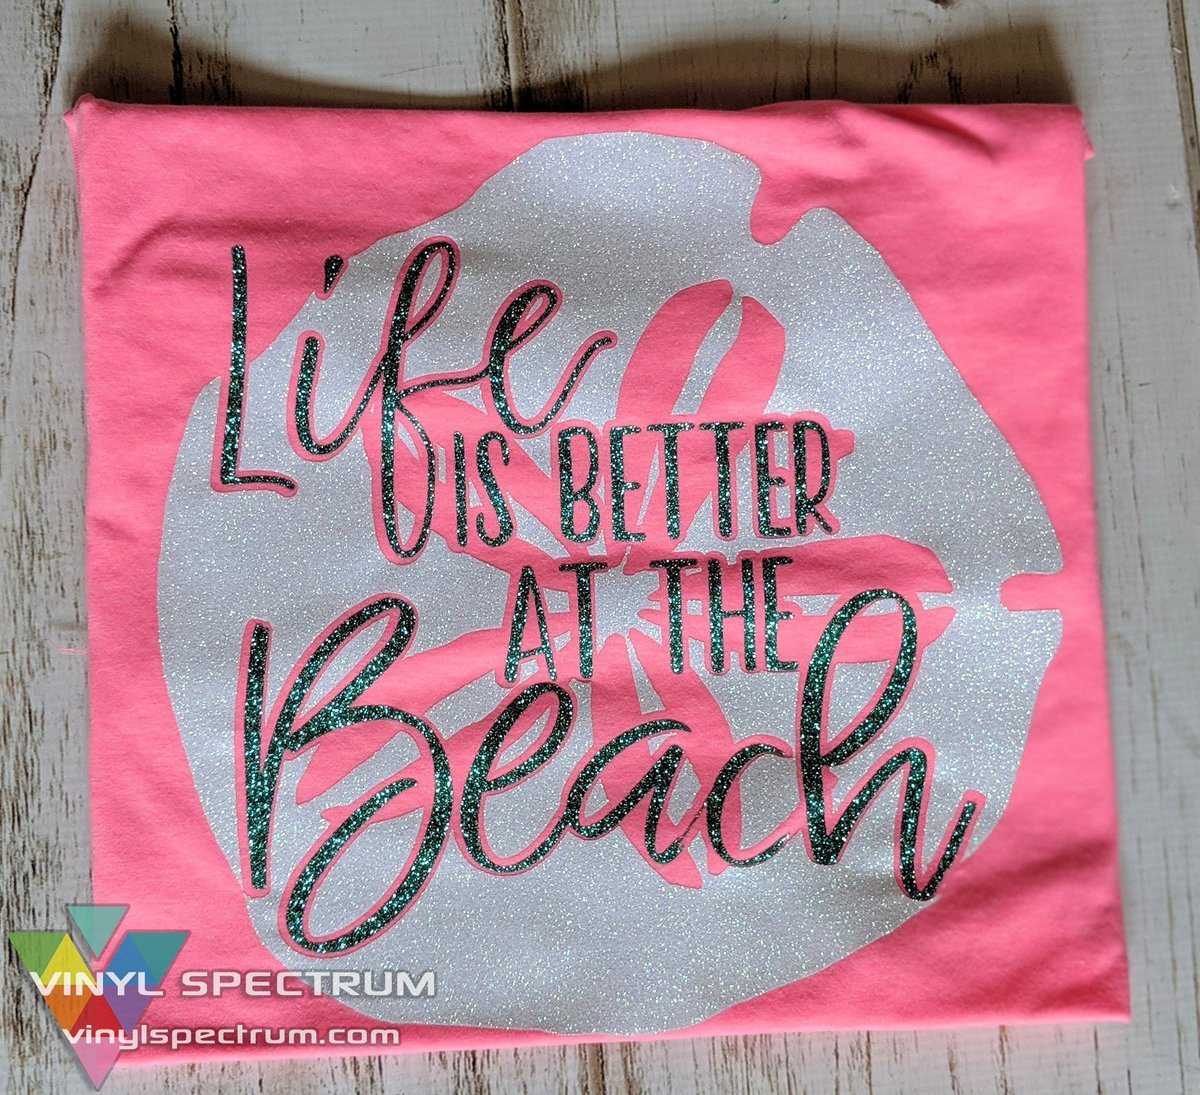 Life is better at the beach! Do you agree? White Rainbow Siser Glitter and Jade Glitter used!  #VinylSpectrum #lifeisbetteratthebeach #sanddollar #beach #vacay #vacation #sea #glitter #travel #Silhouette #Siser #glitterhtv #vinyl #jade #rainbow #white #crafty #shopsmall #explore